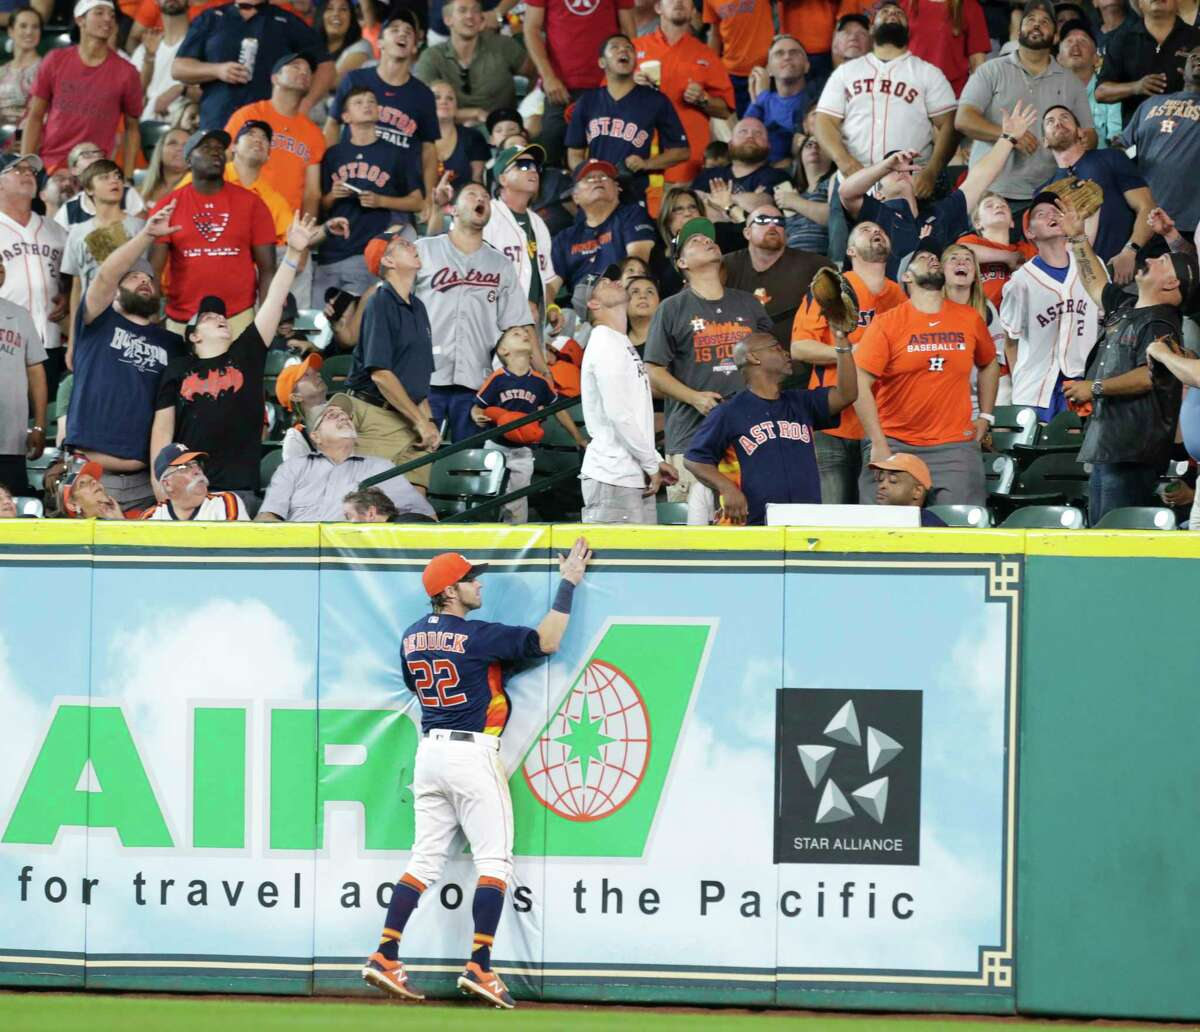 Astros right fielder Josh Reddick and the fans in his vicinity watch a three-run homer by Eric Young Jr. clear the fence in the fifth inning, putting the Angels up 9-6.